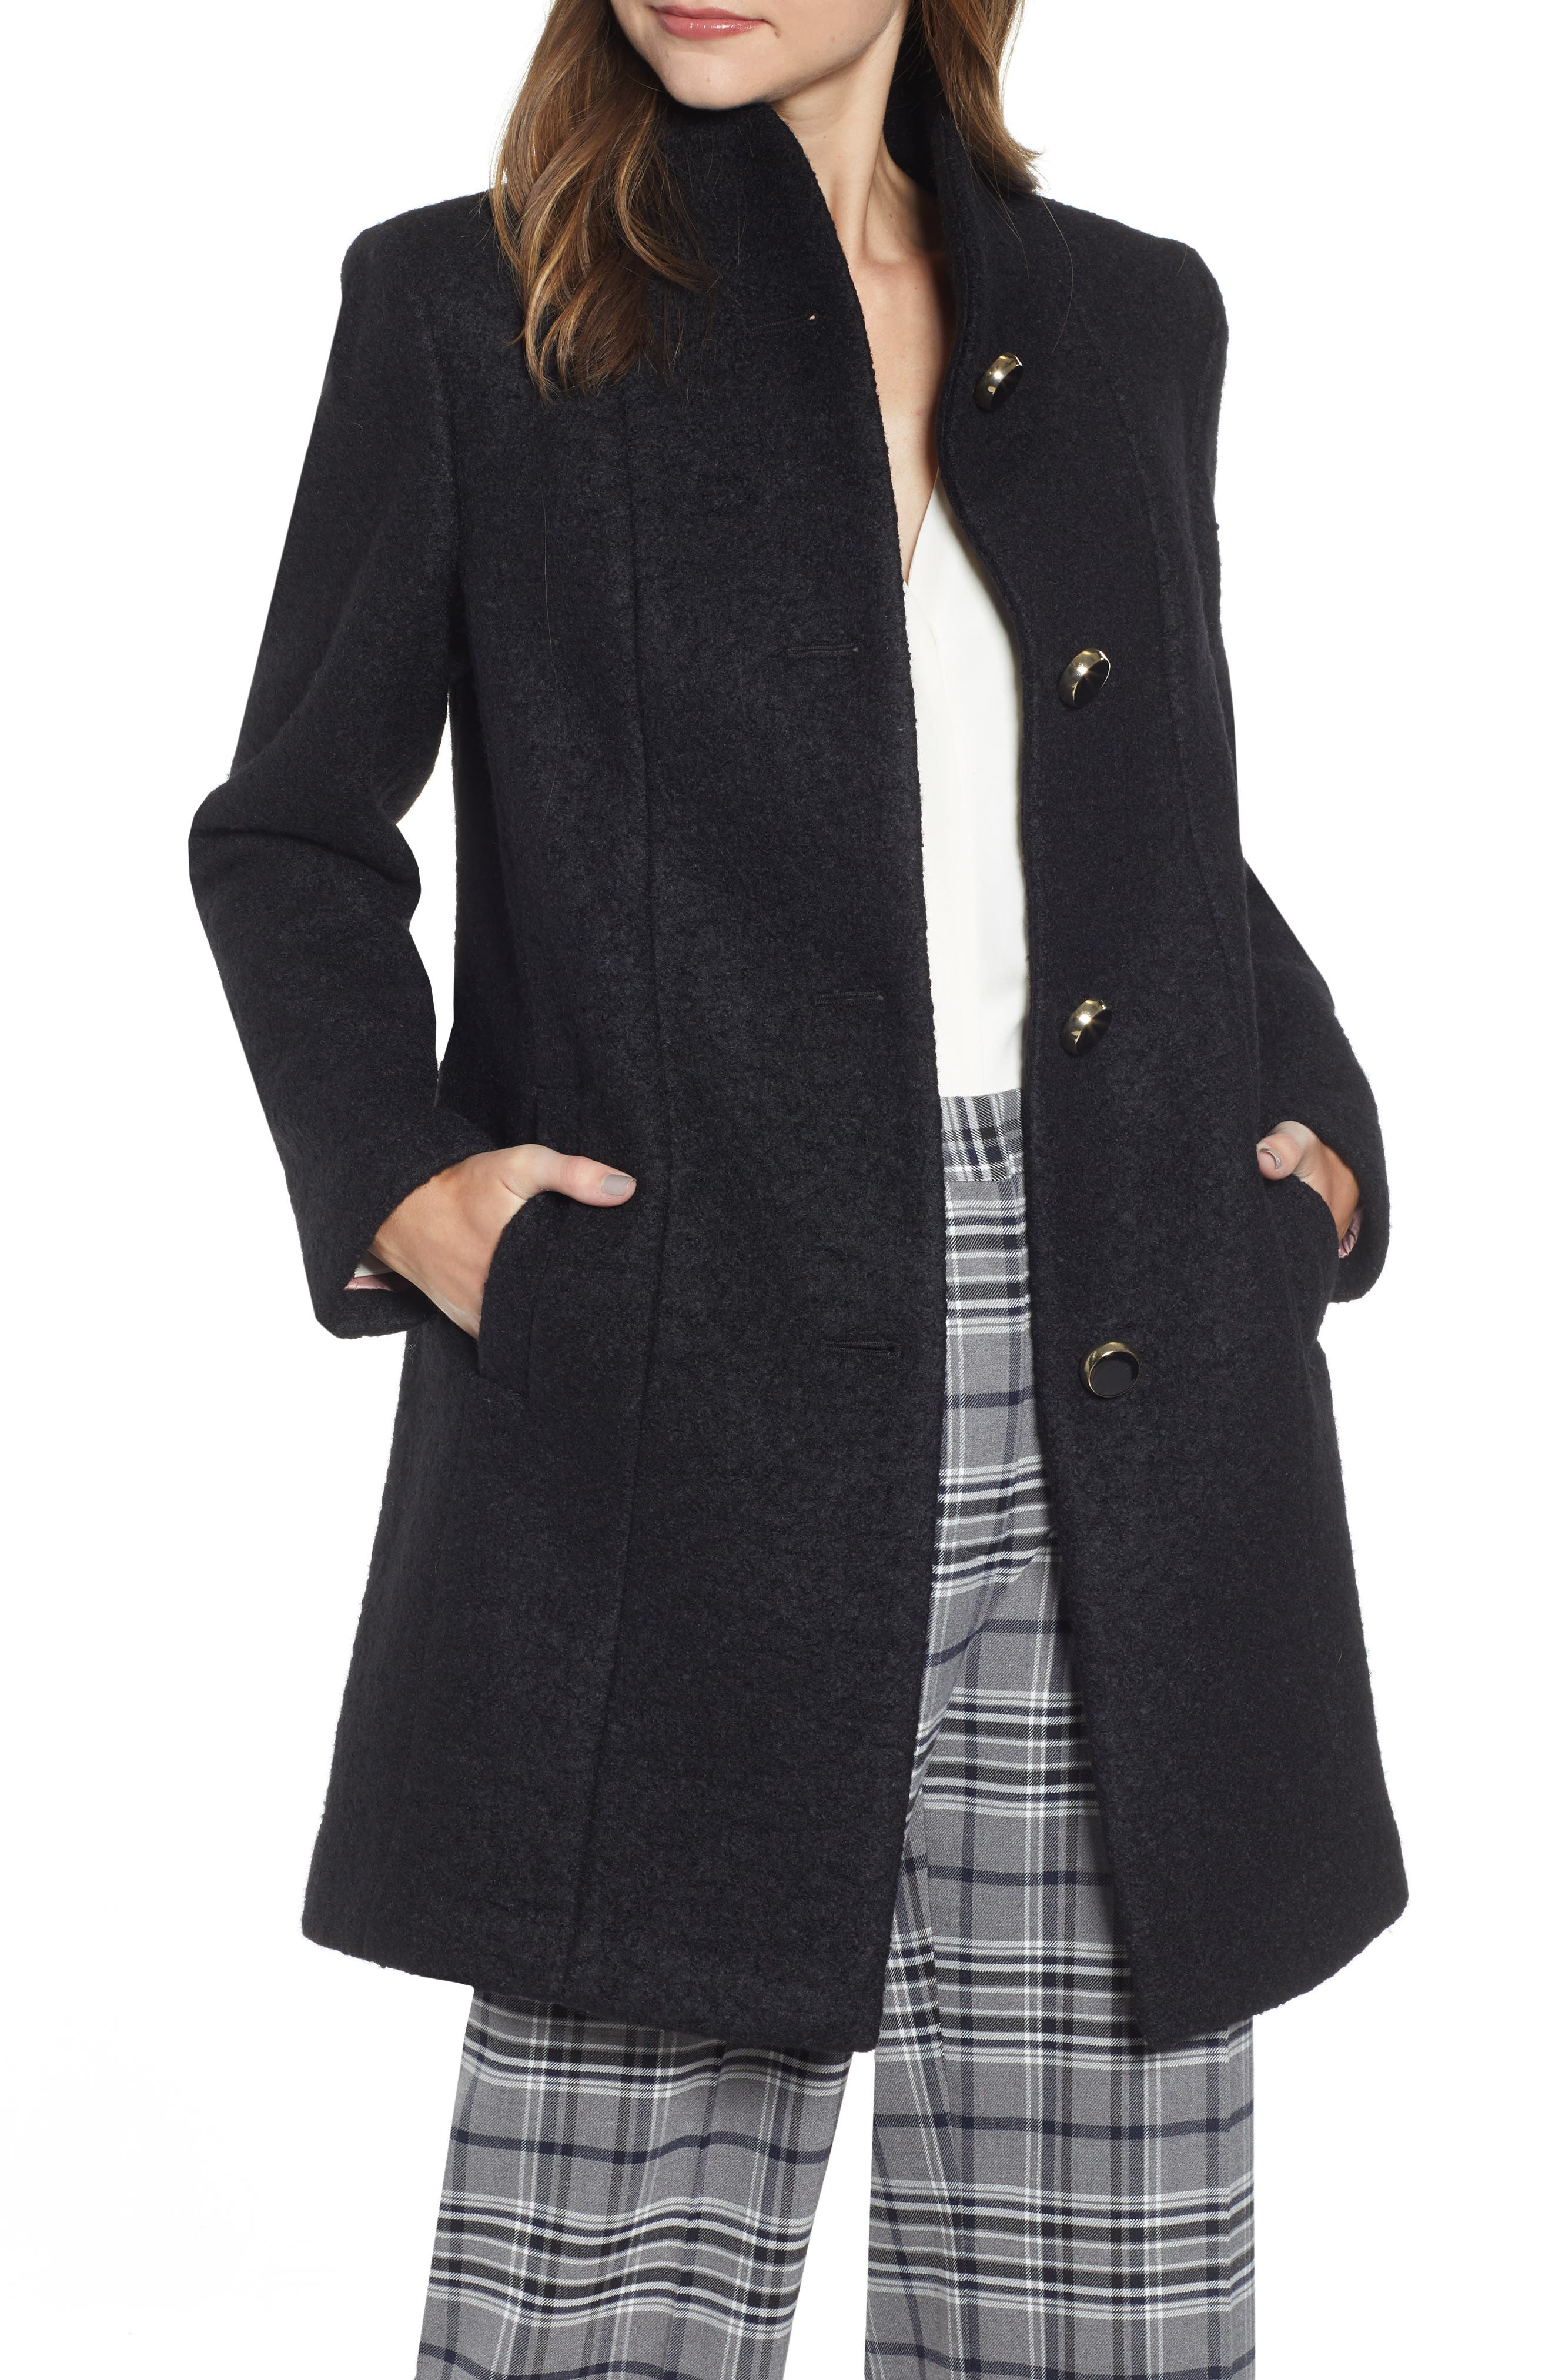 kate spade new york wool blend coat